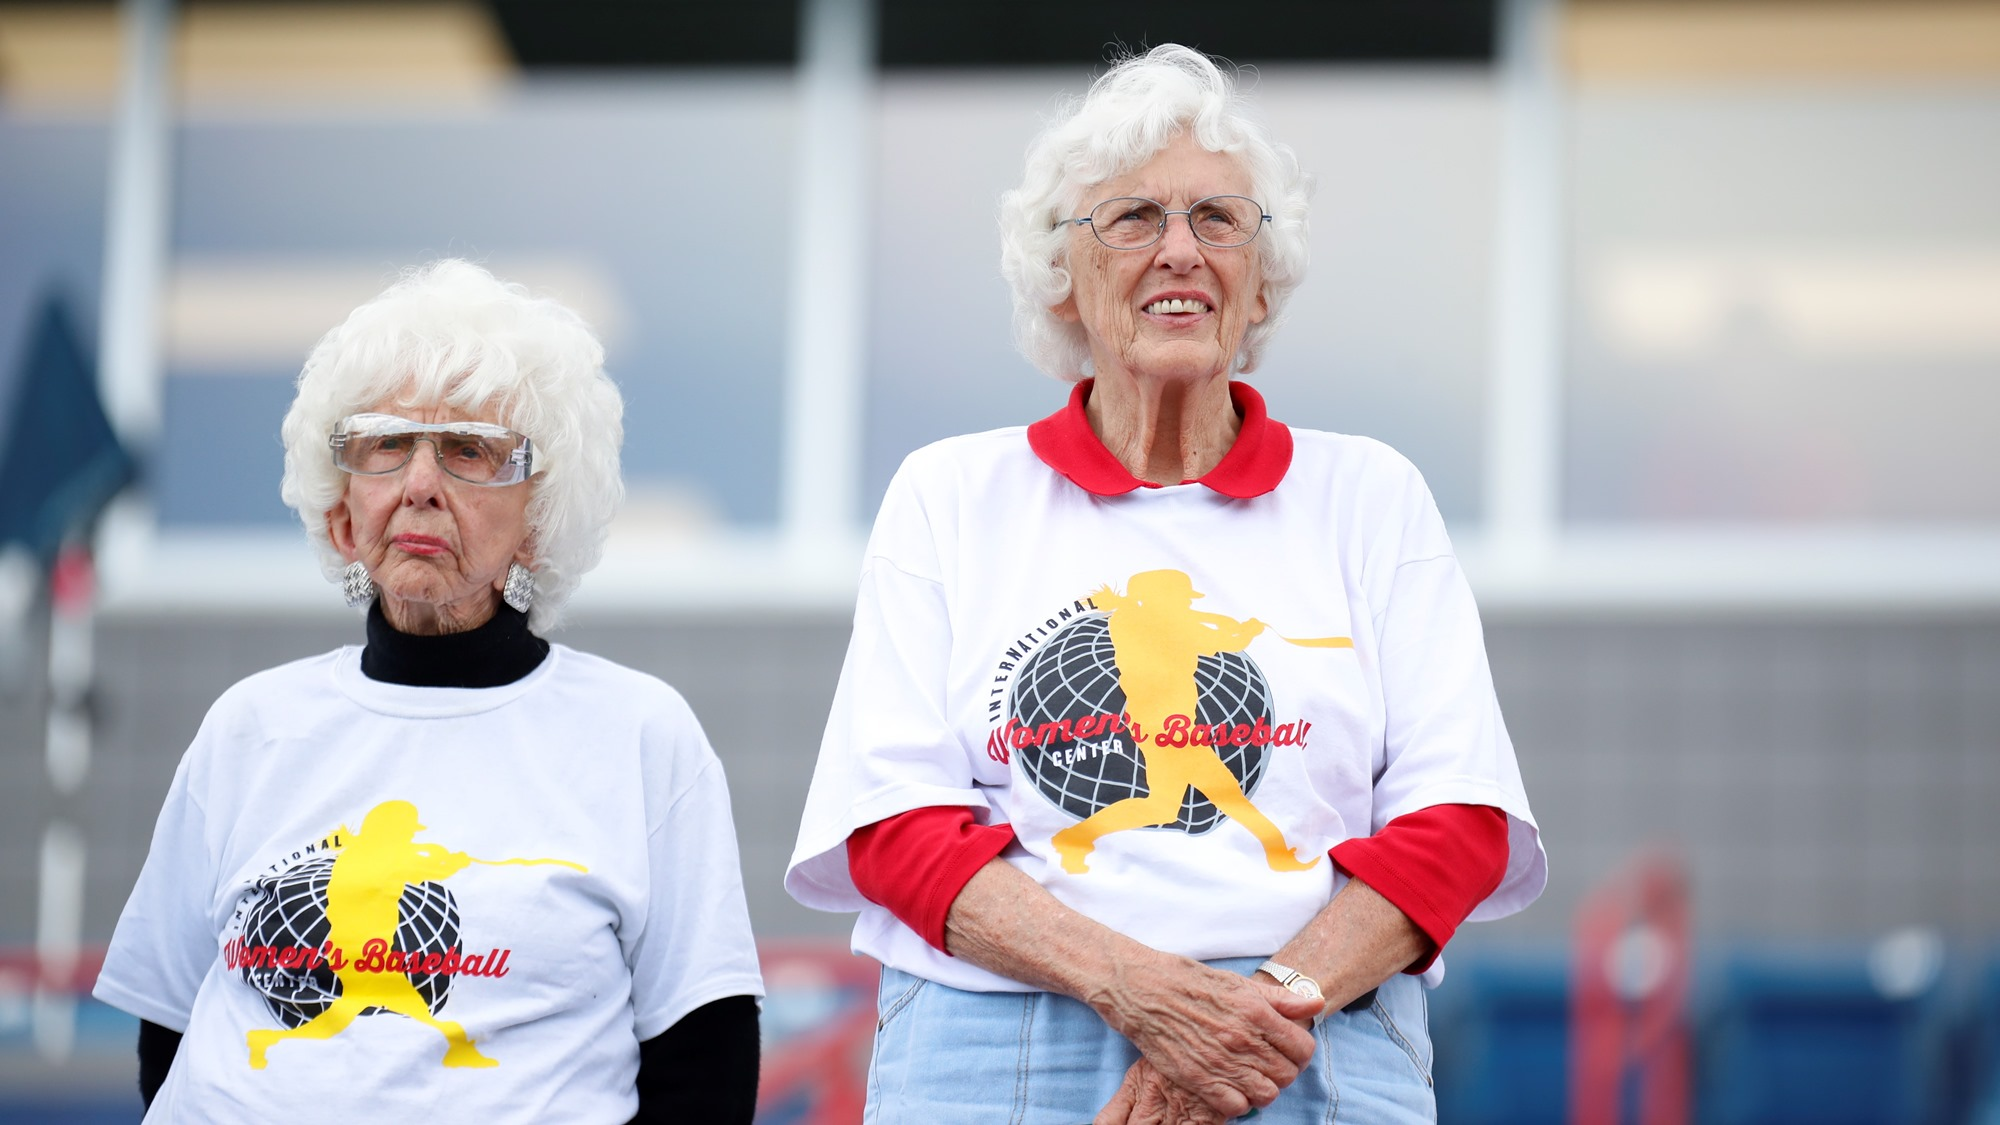 Maybelle Blair and Shirley Burkovich where in attendance. They played in the All-American Girls Professional Baseball League in the late 1940s-early 50s